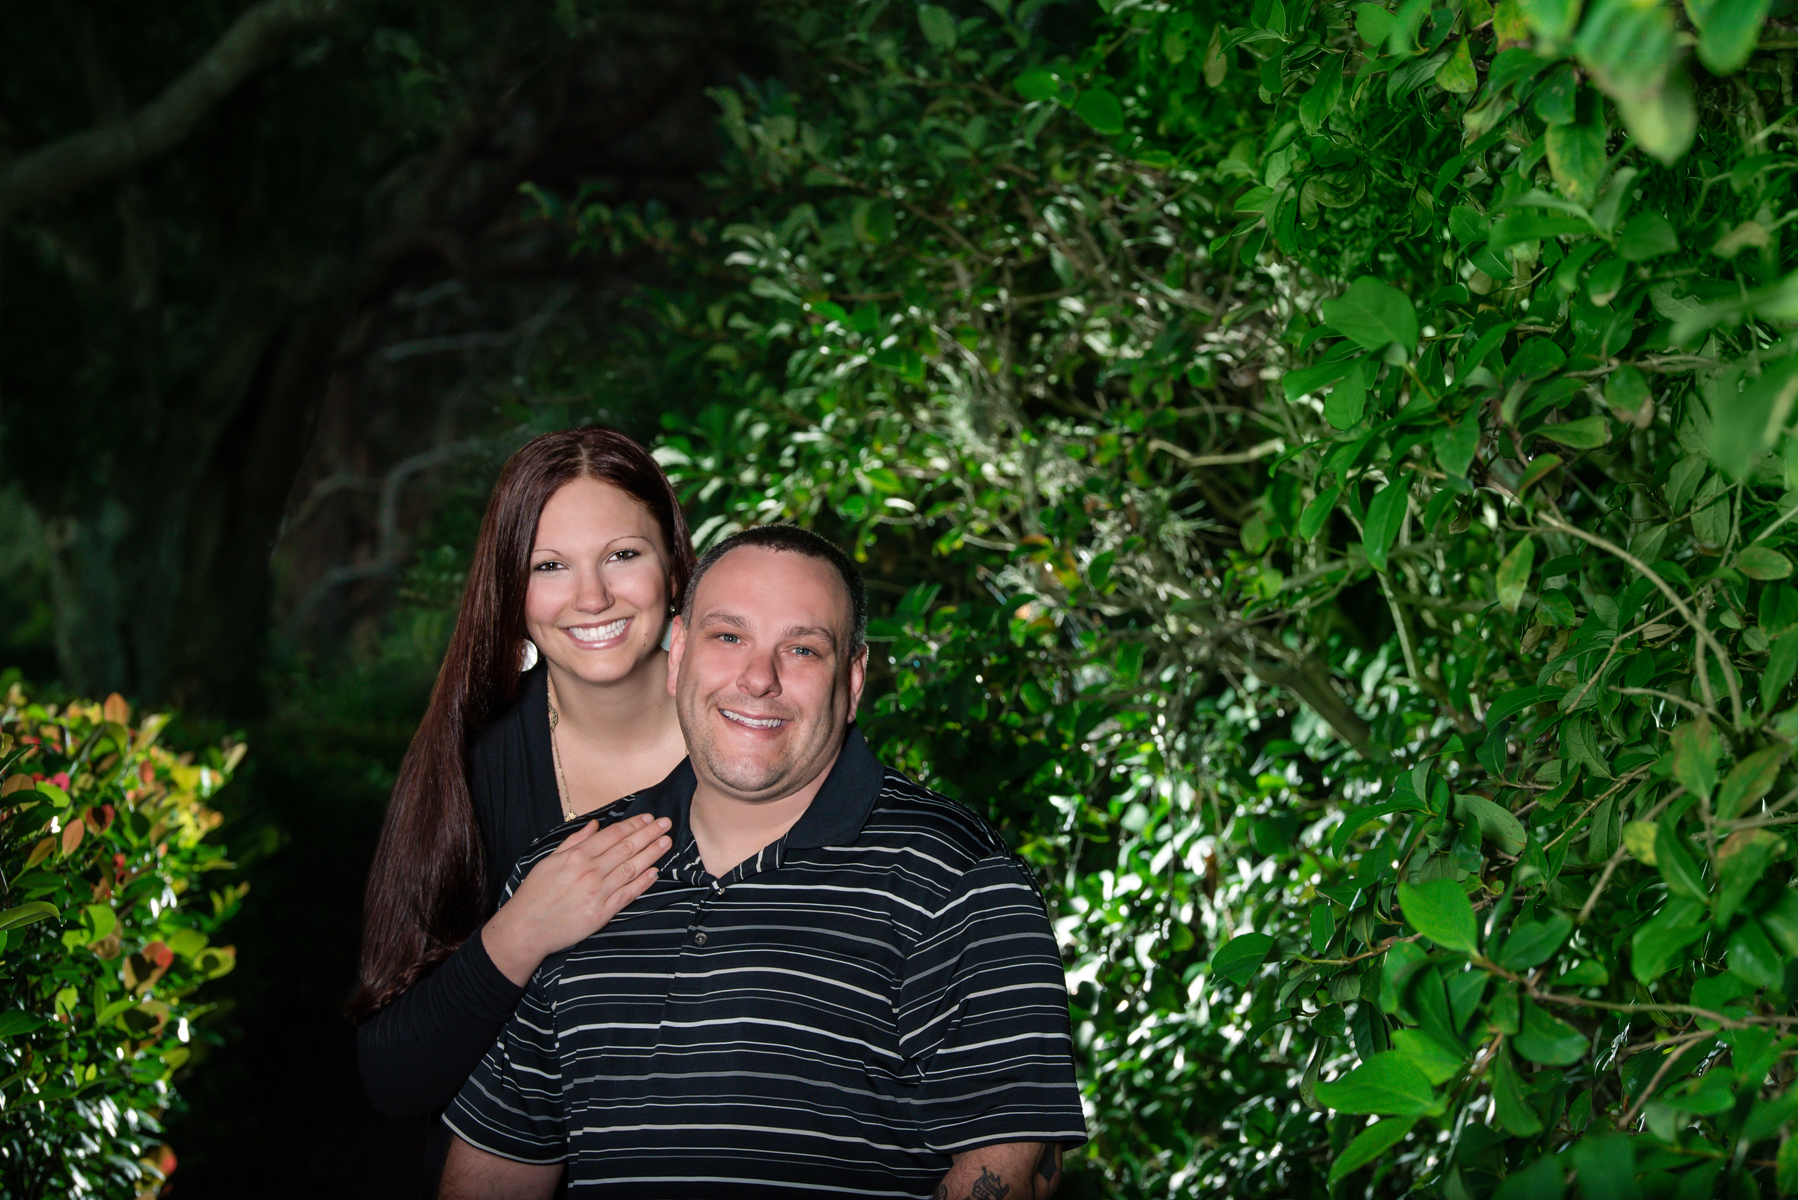 Call 561-307-9875 to schedule your family photo session.